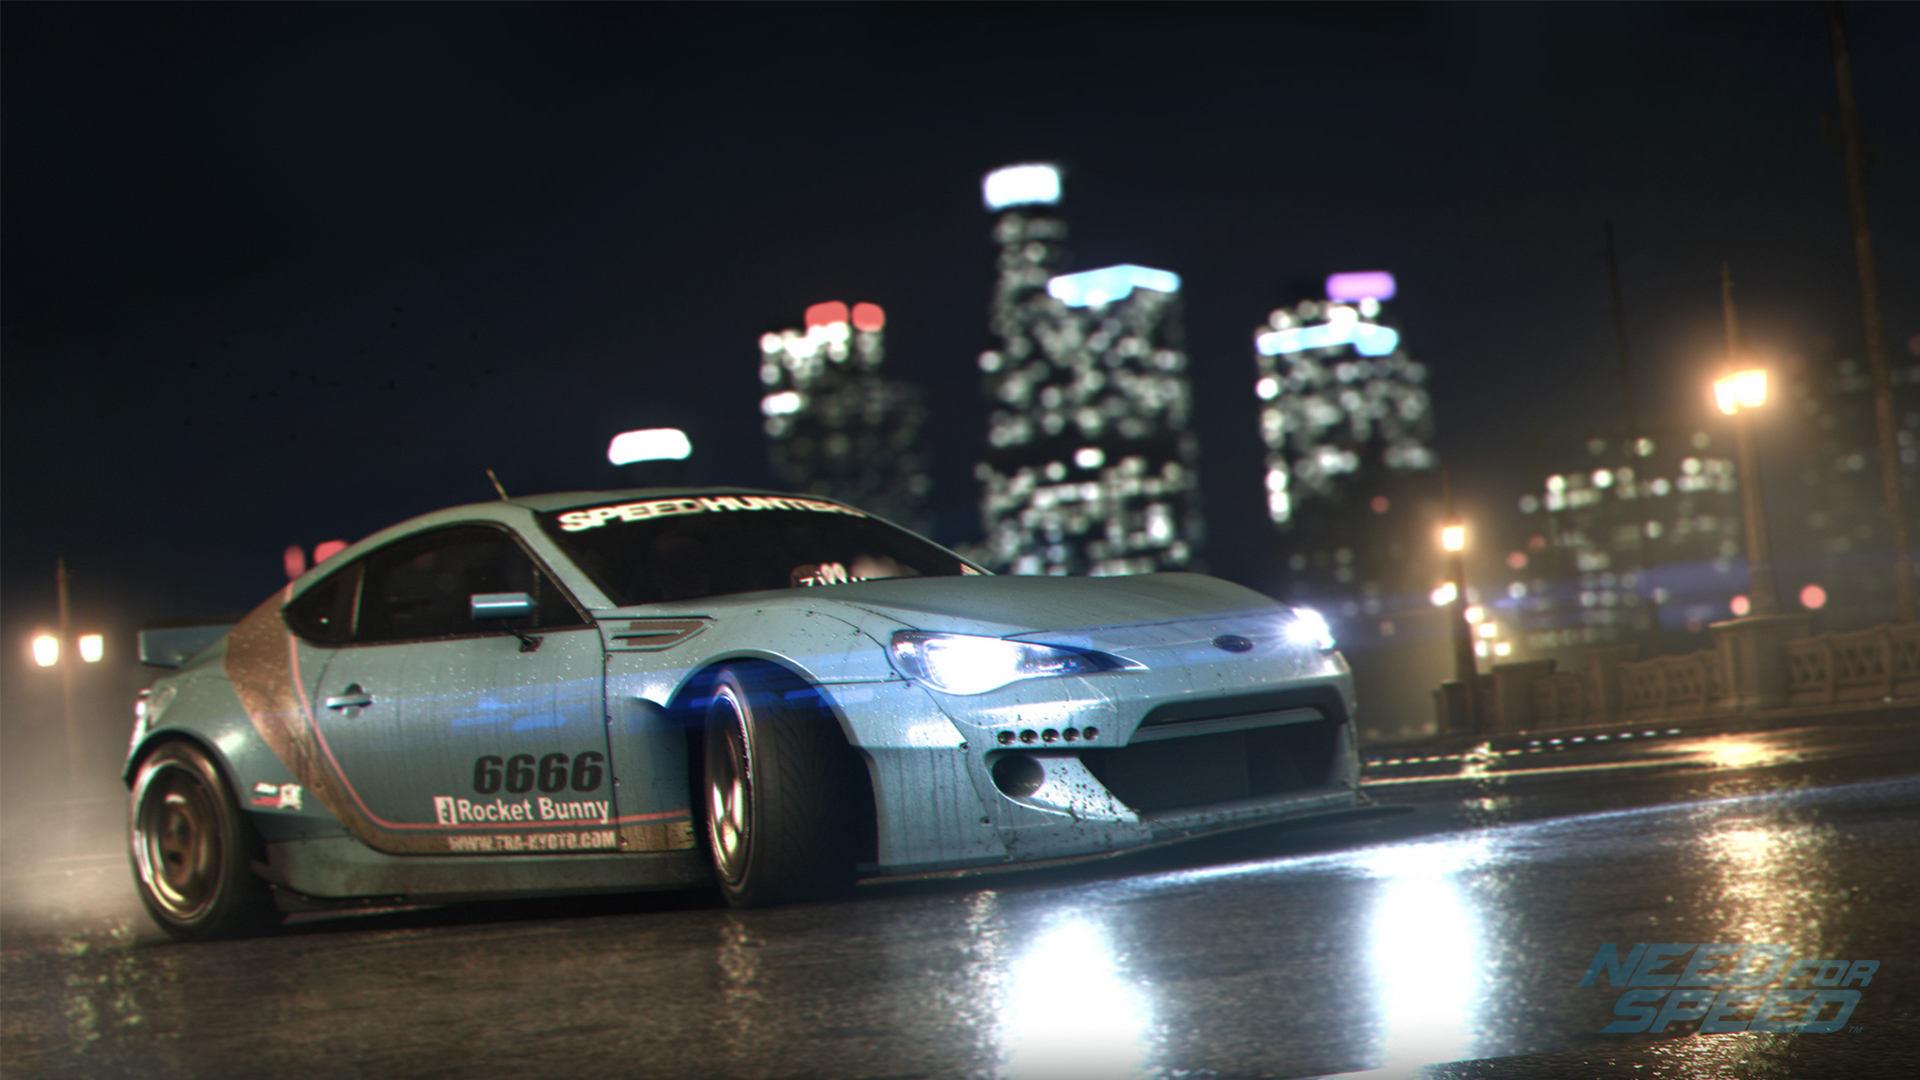 Need for Speed Free Updates Are Ending as Dev Shifts to New Game